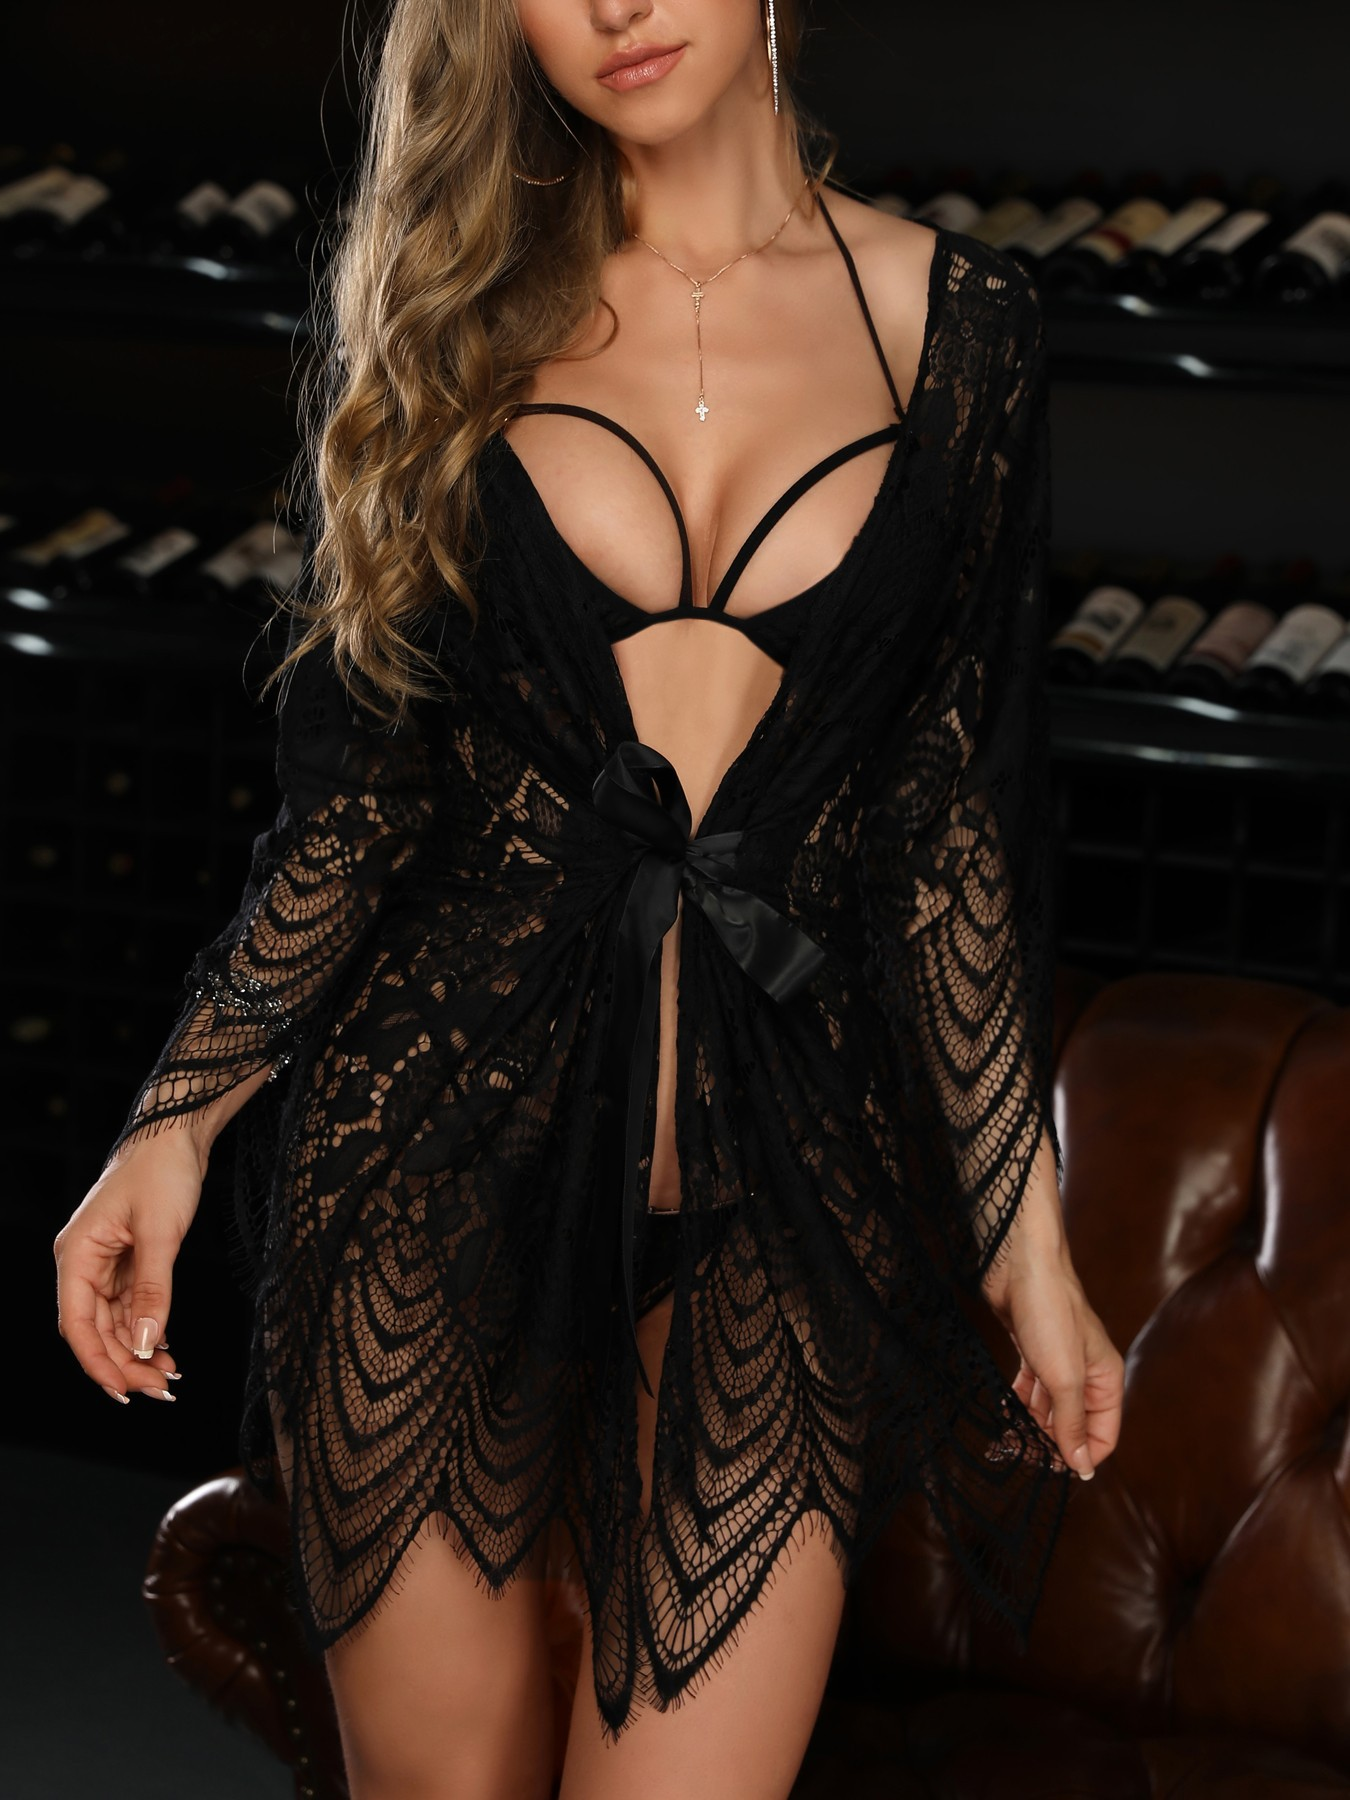 New Sexy Lingerie Women 's Sexy Lace Mesh Perspective Lace -up Bathrobe Underwear Three - Piece Pajamas Large Size